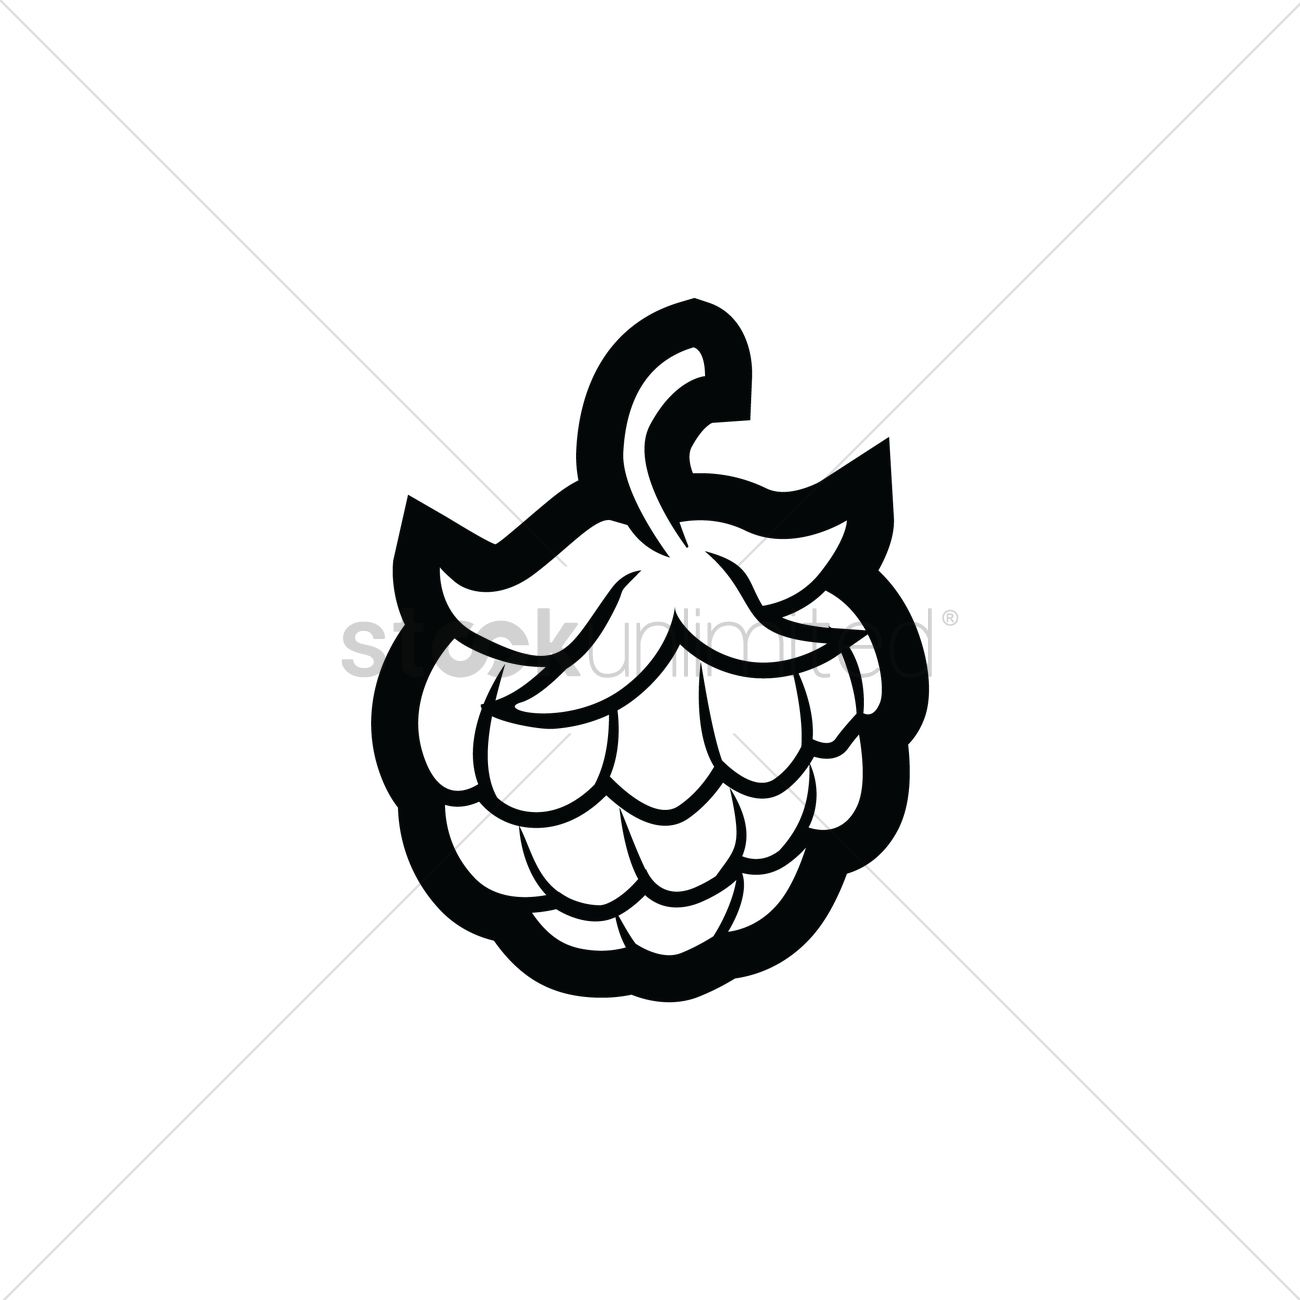 Custard apple Vector Image - 1480980 | StockUnlimited